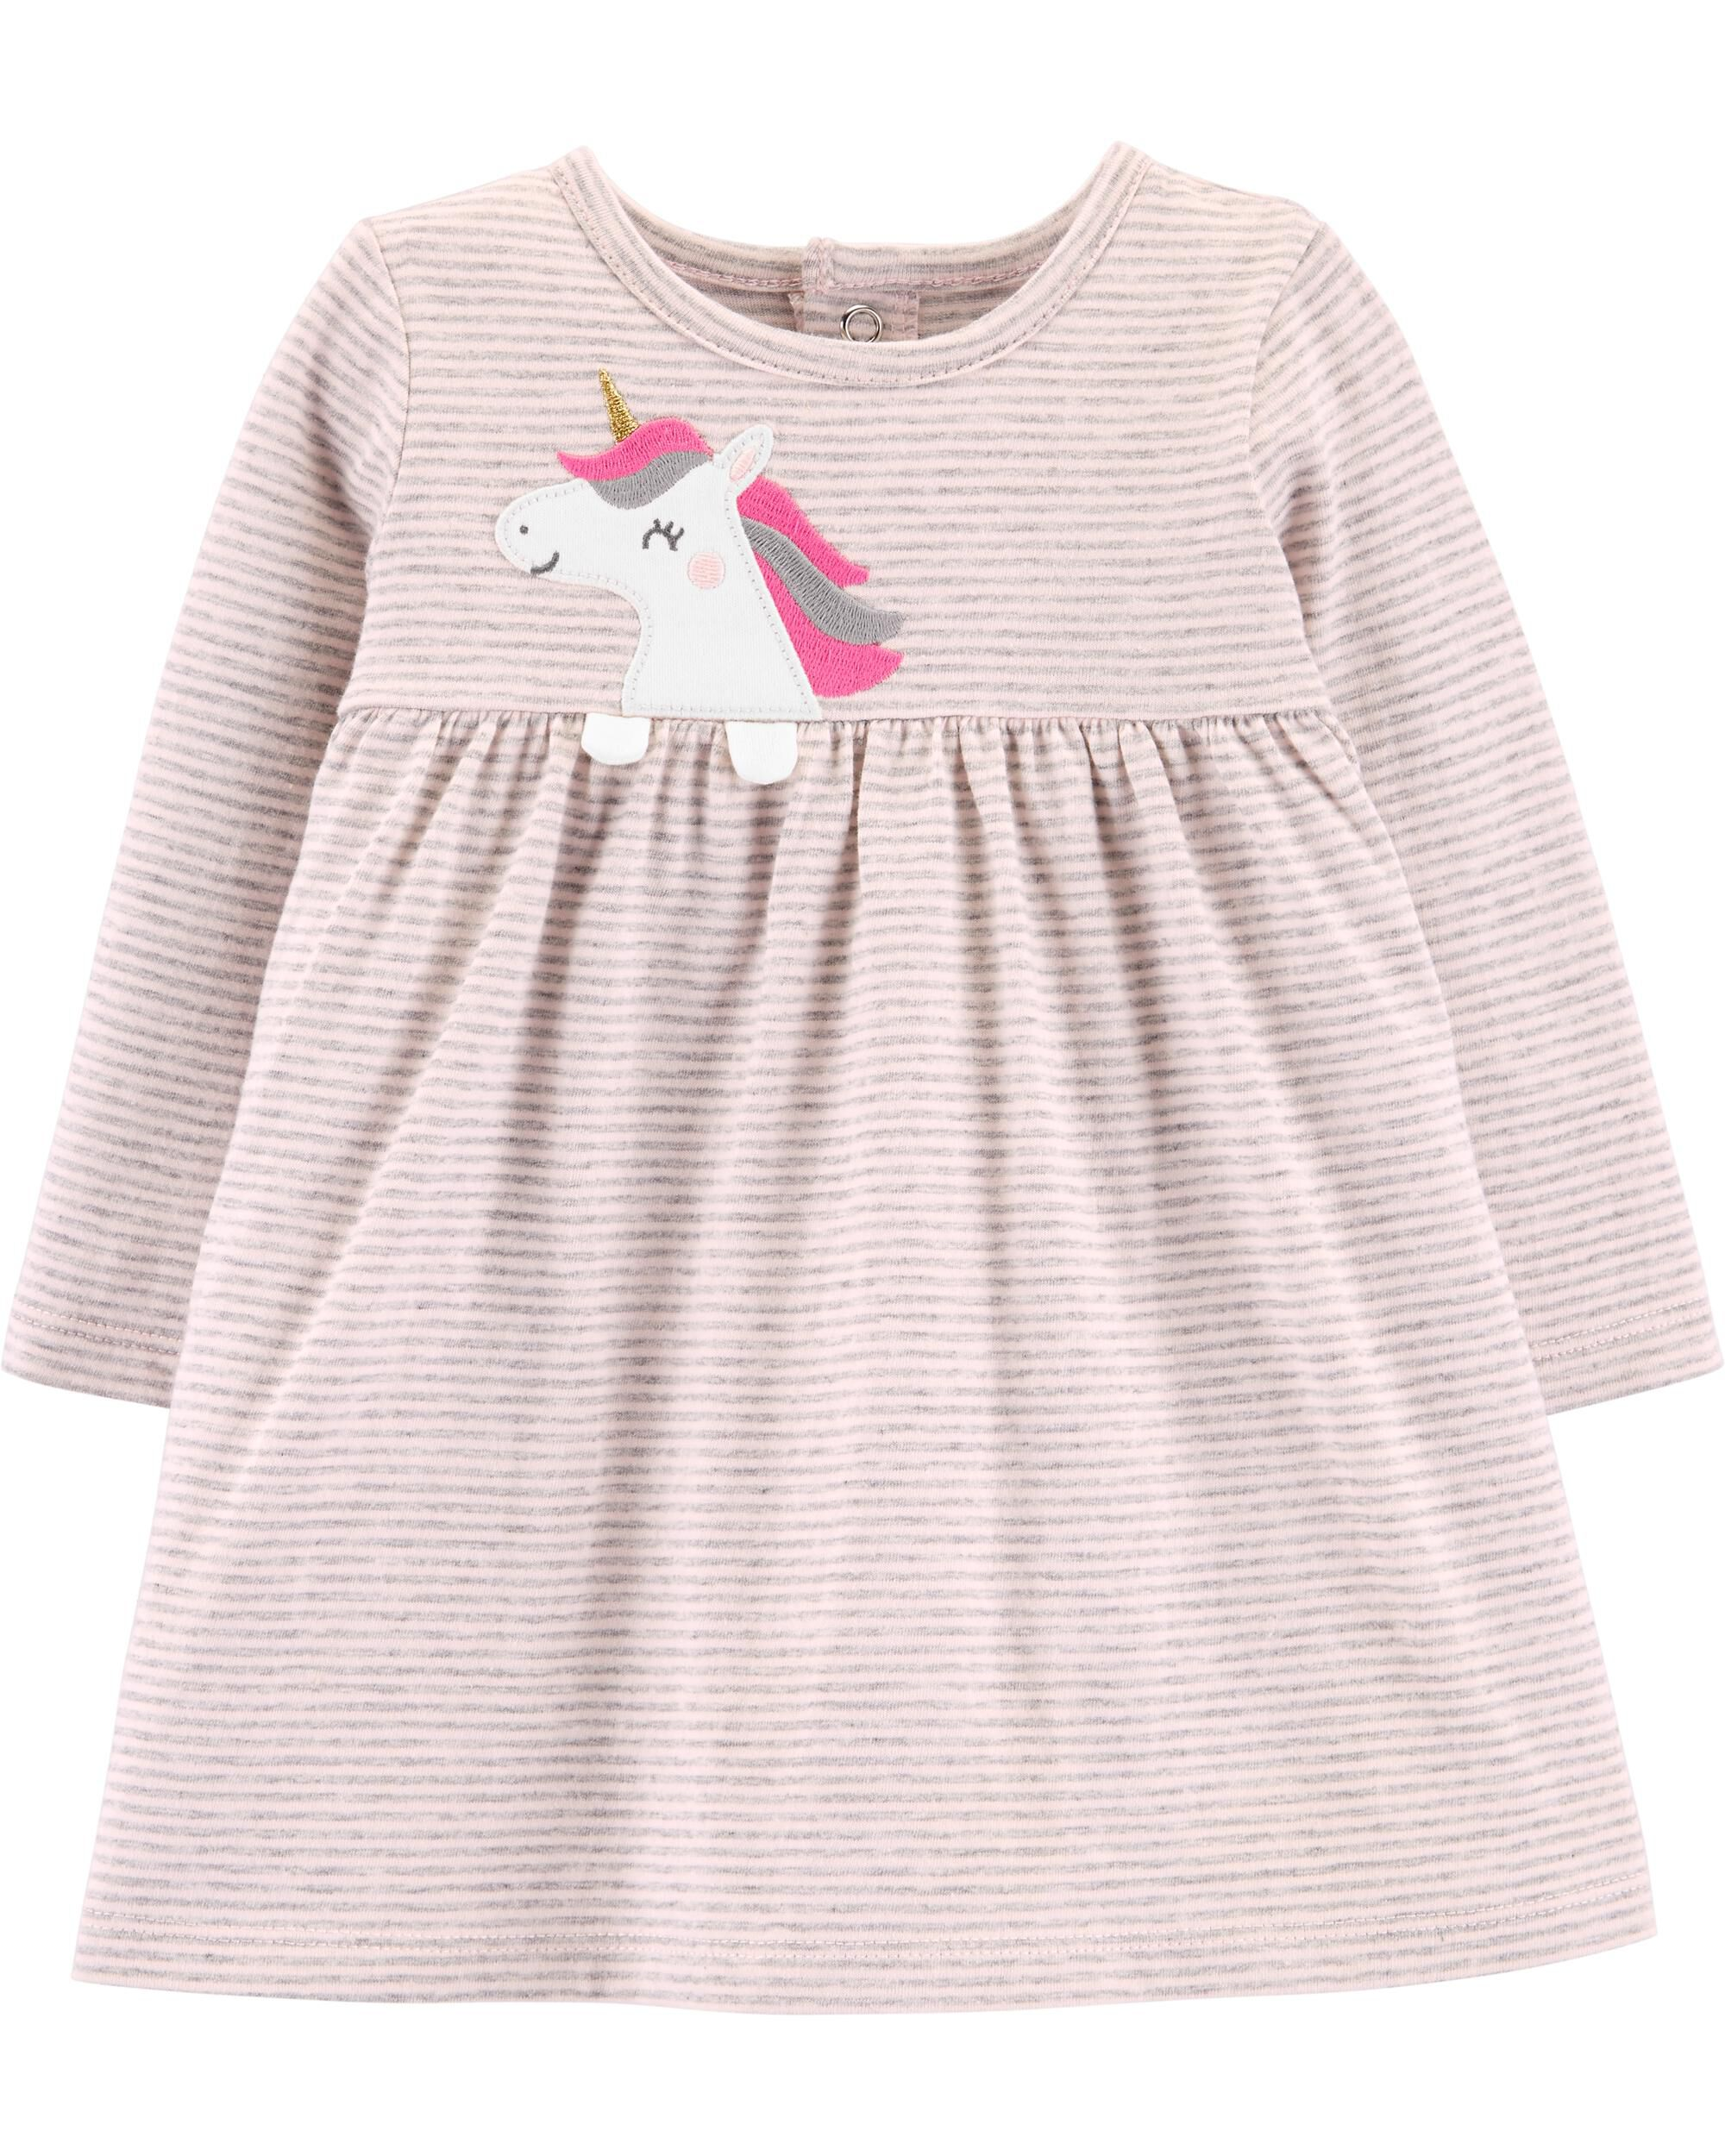 *Clearance*  Striped Unicorn Jersey Dress